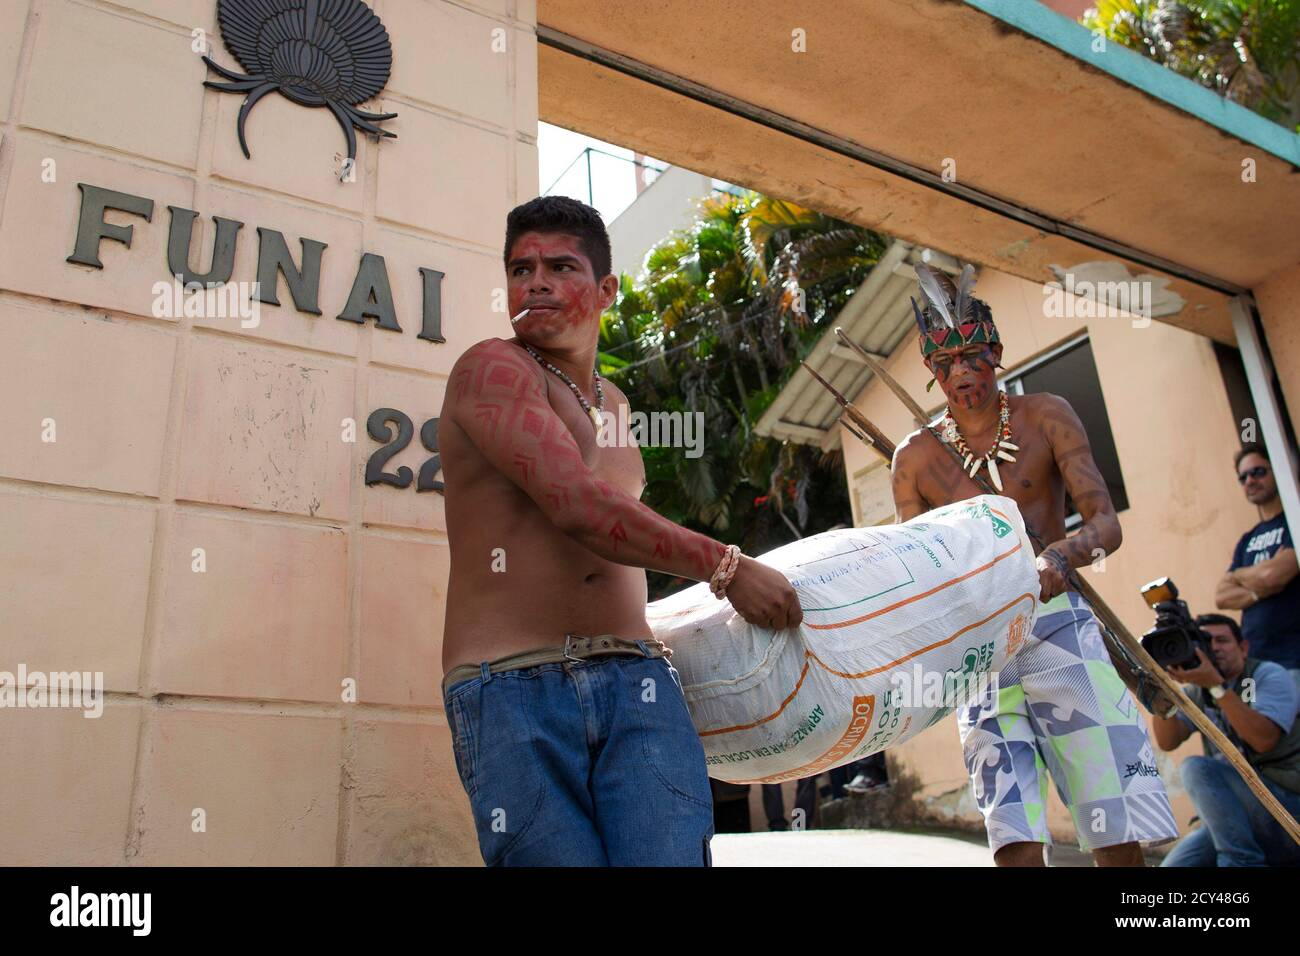 Amazon Indians of various tribes carry their belongings as they are expelled from the headquarters of Brazil's Indian affairs bureau FUNAI by police acting under court order, in Manaus January 29, 2014. Some 50 Indians have been occupying FUNAI's building since last November as they pressure the institution to change its current director, Eduardo Desiderio Chaves, who they complained for being a non-Indian and is accused of ignoring their needs, according to the group.   REUTERS/Bruno Kelly (BRAZIL - Tags: ENVIRONMENT POLITICS) Stock Photo